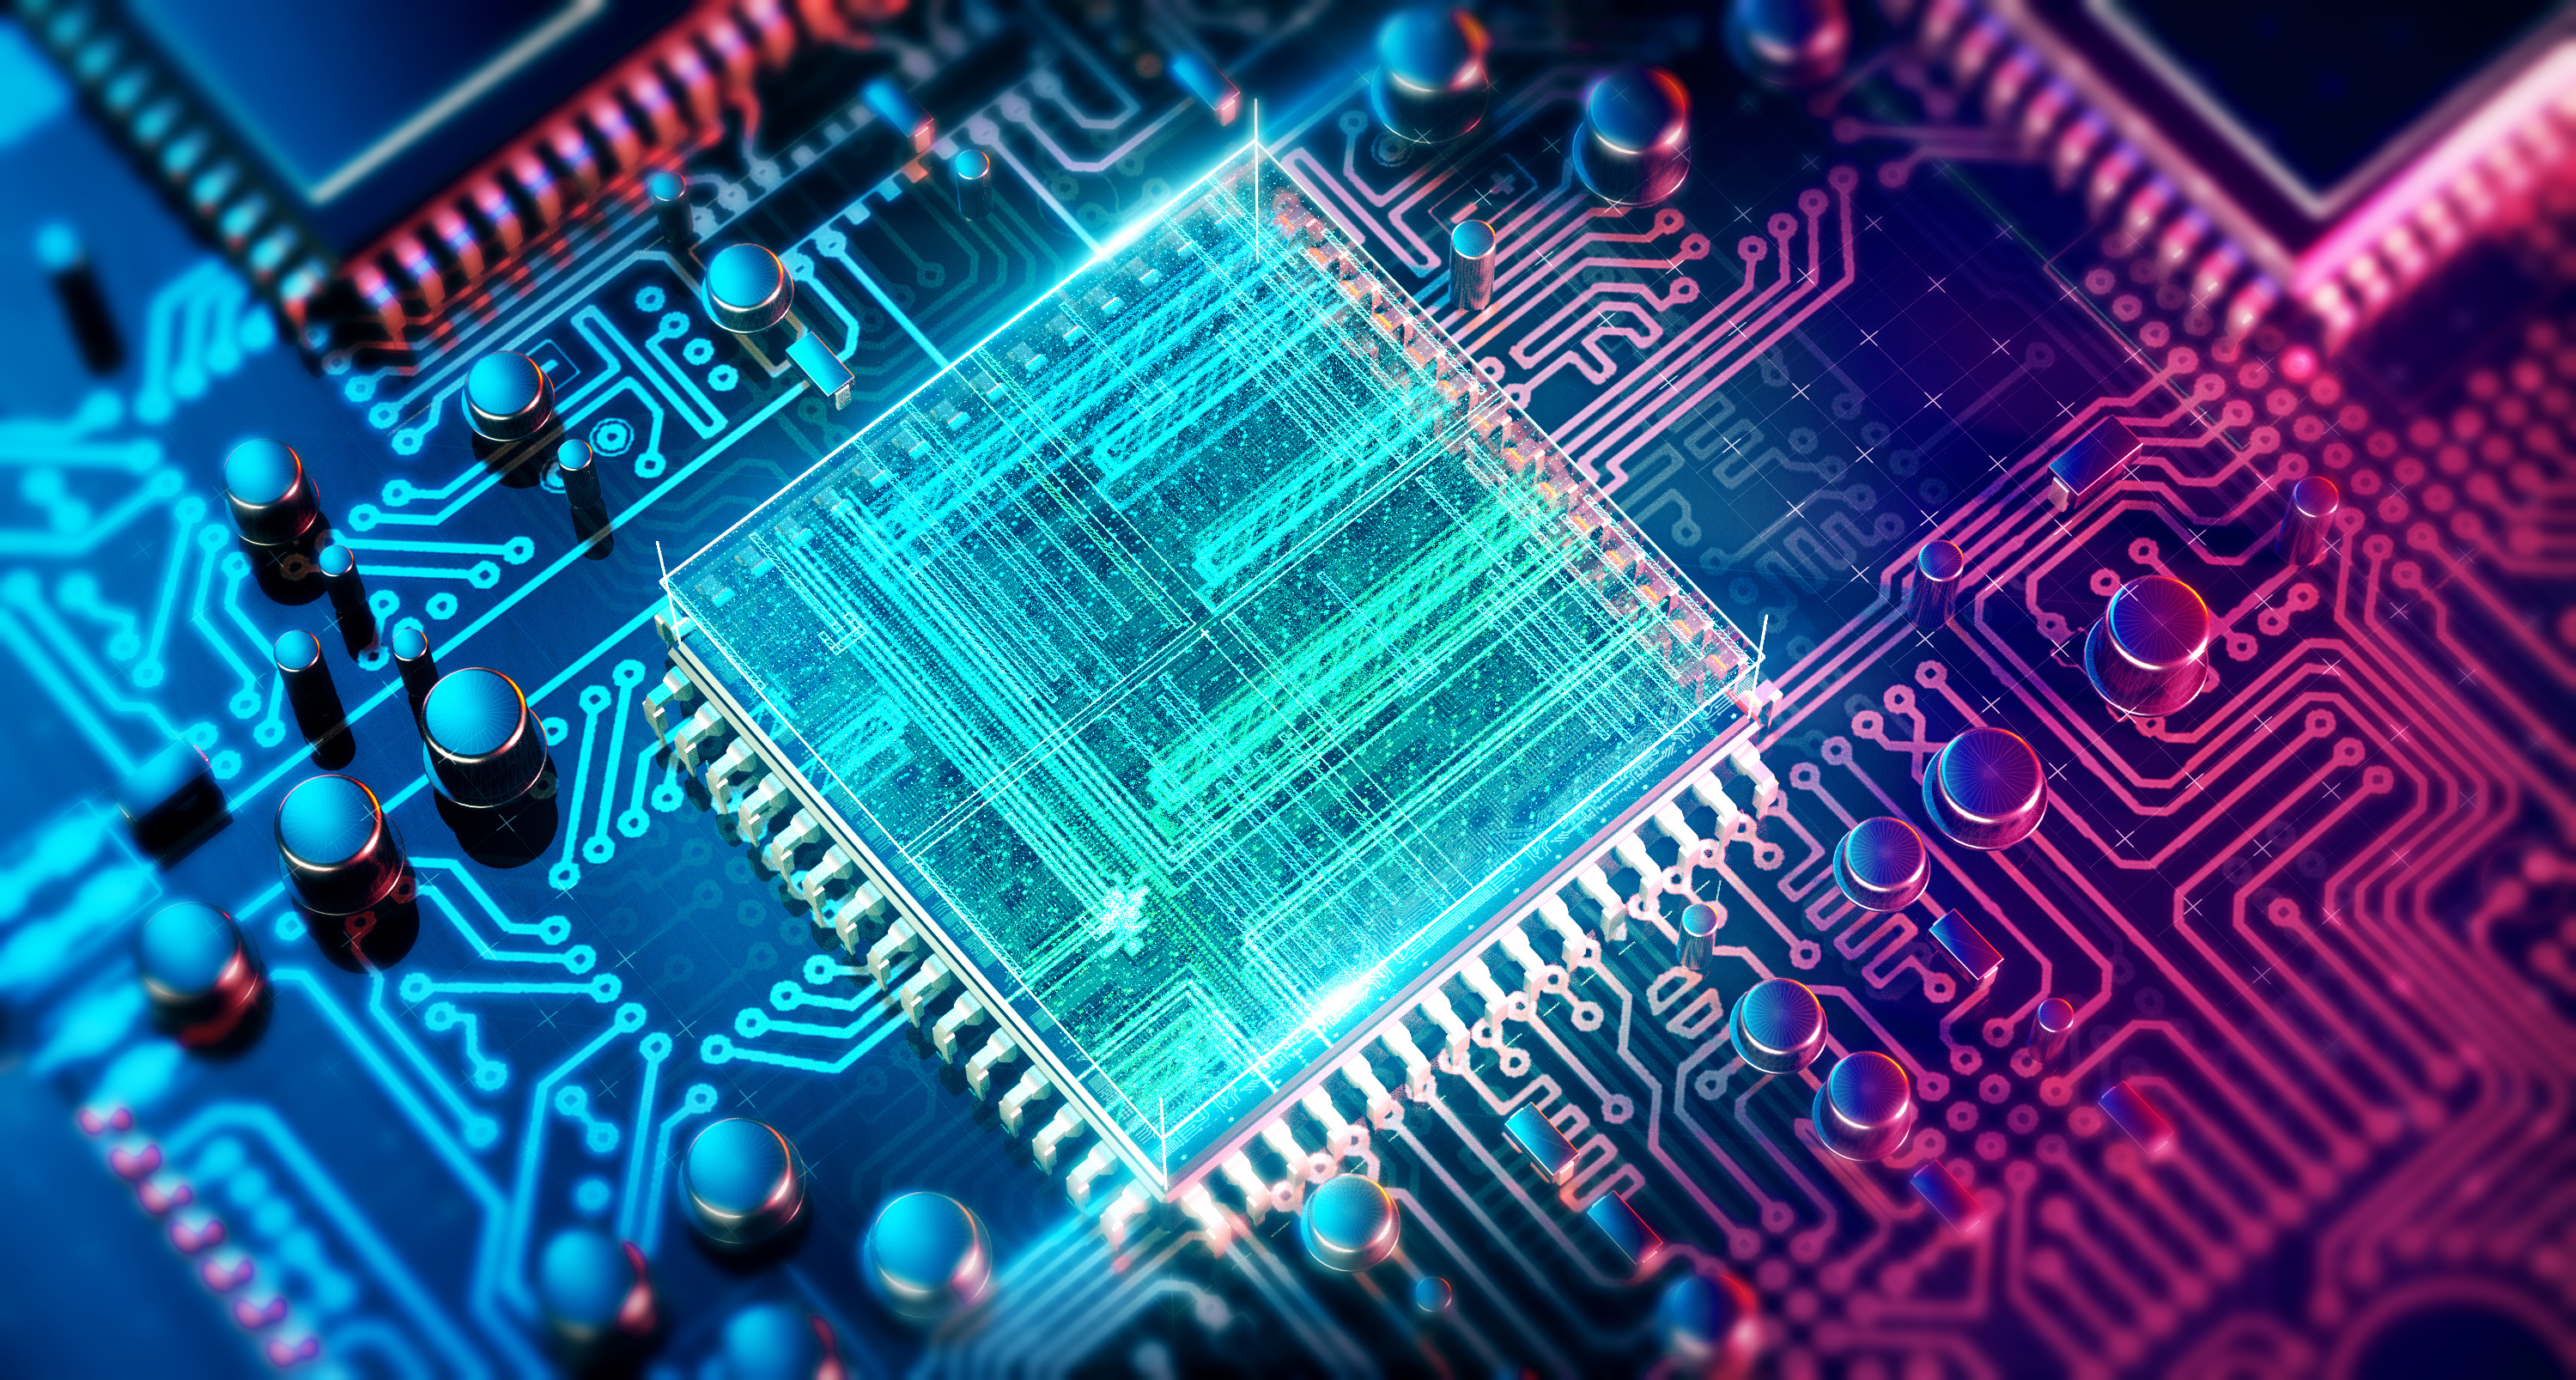 metro.co.uk - Jeff Parsons - Quantum computing will change the digital world beyond recognition